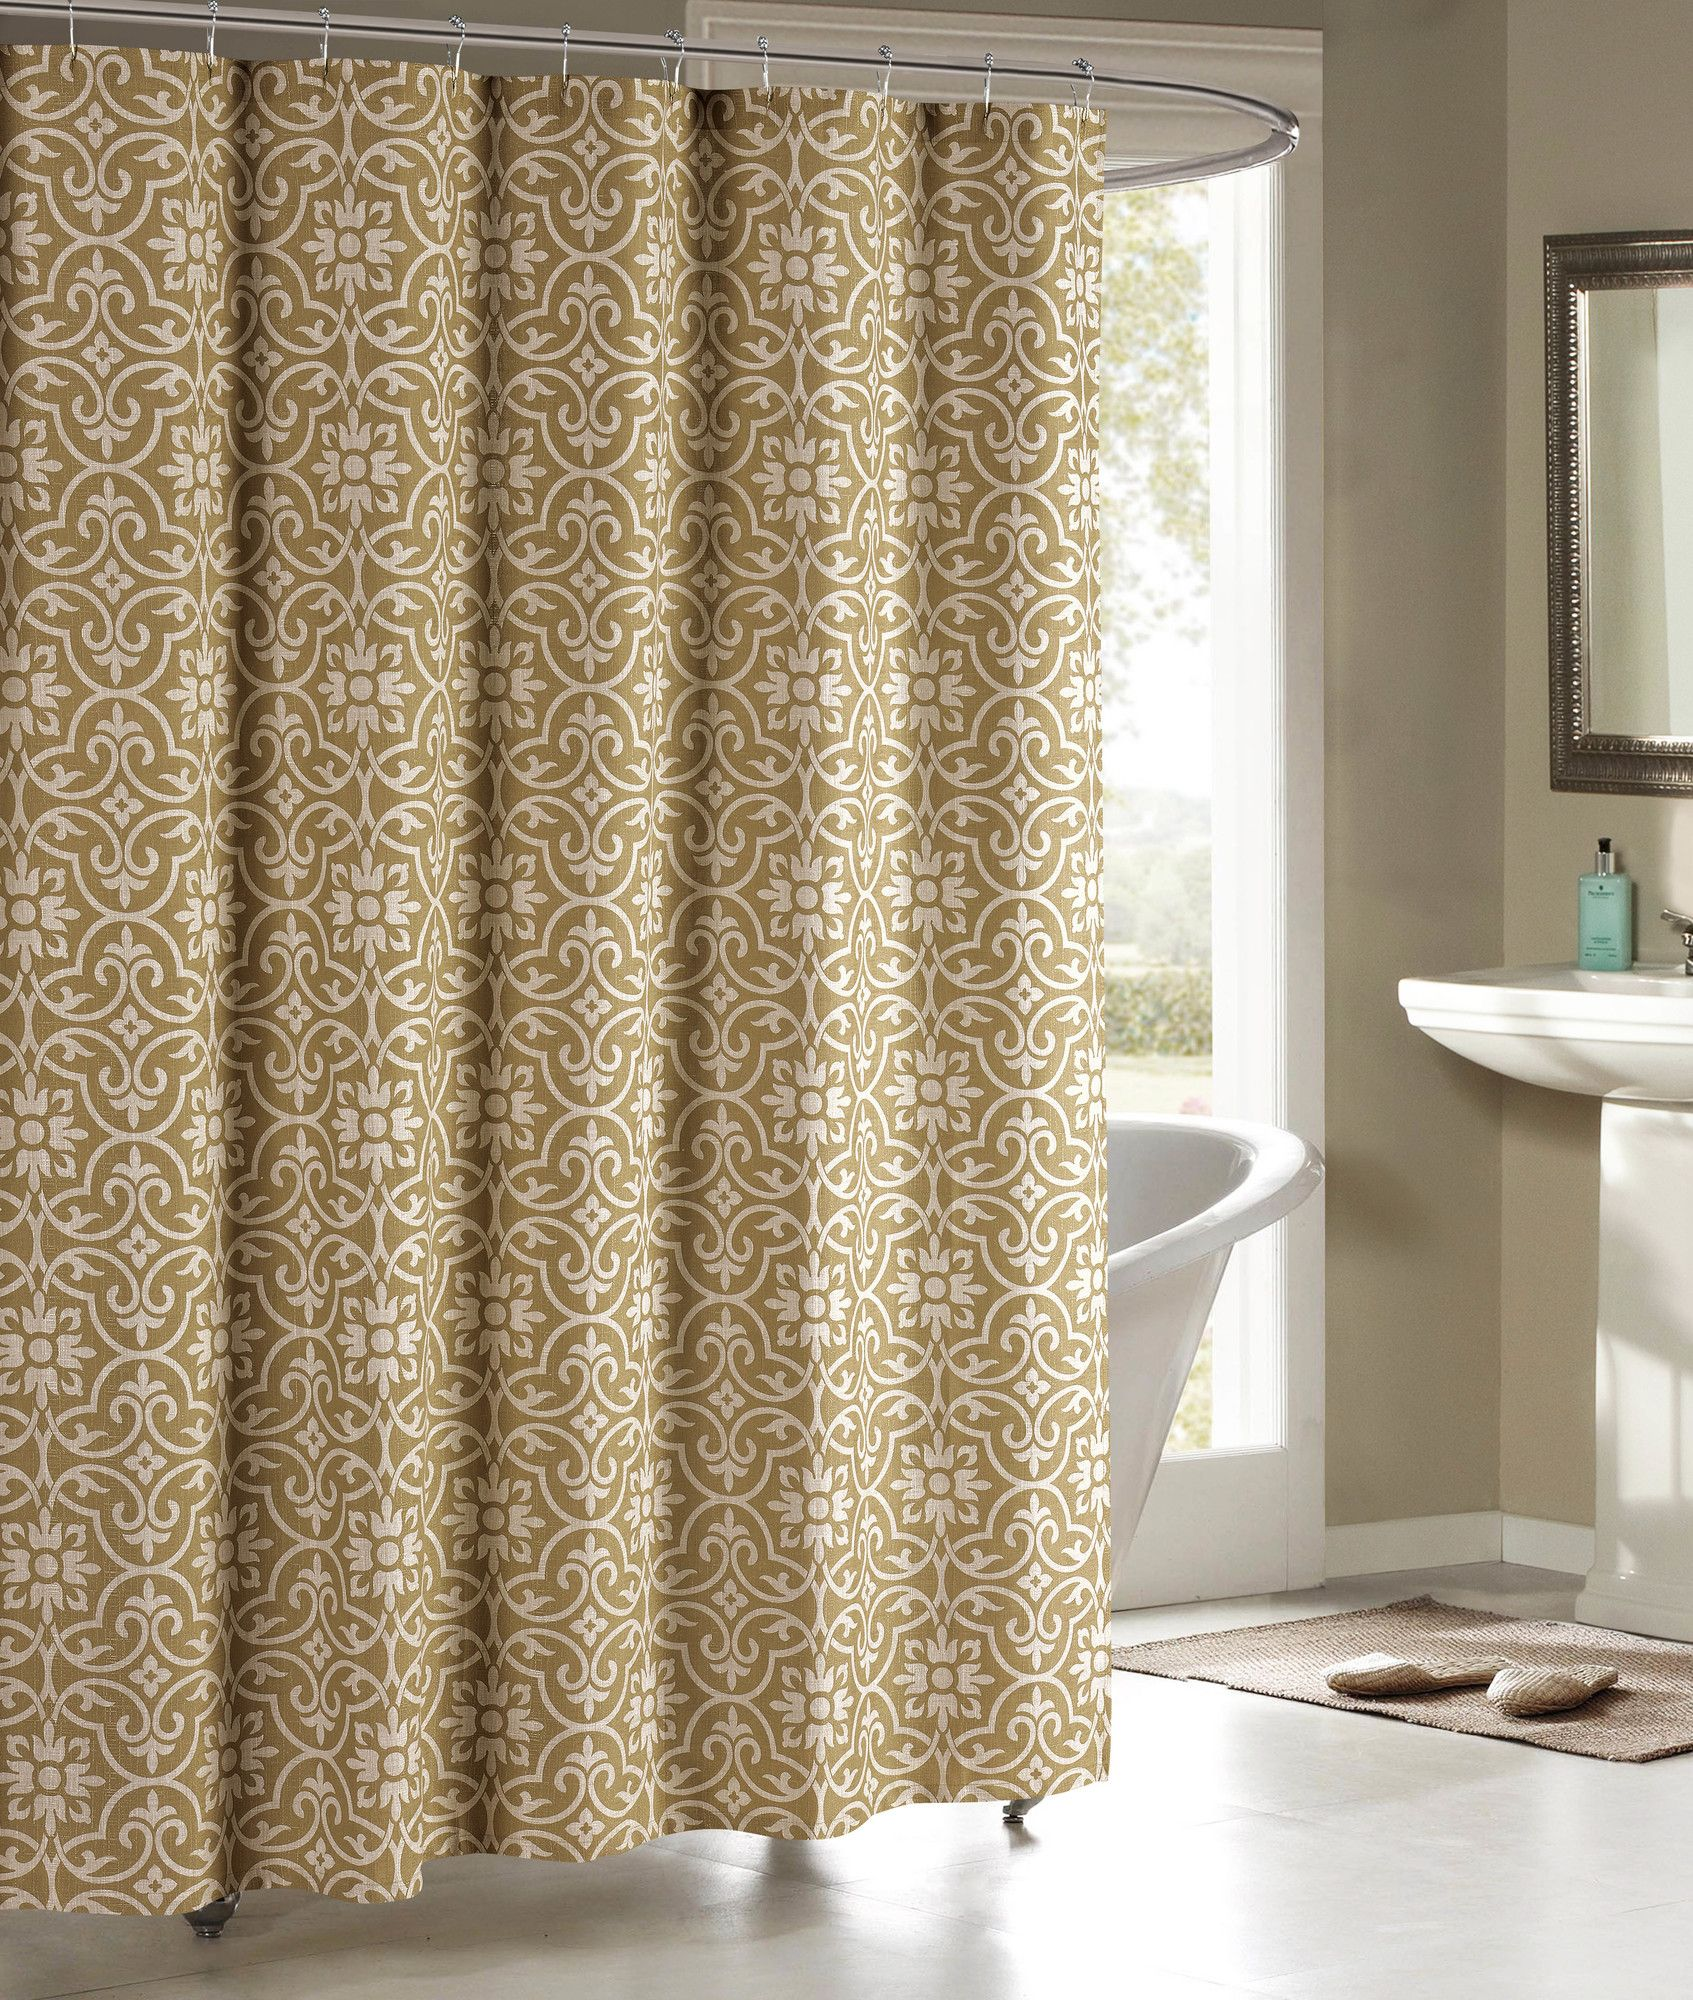 Instantly transform any bathroom with a new luxury cottonpolyester